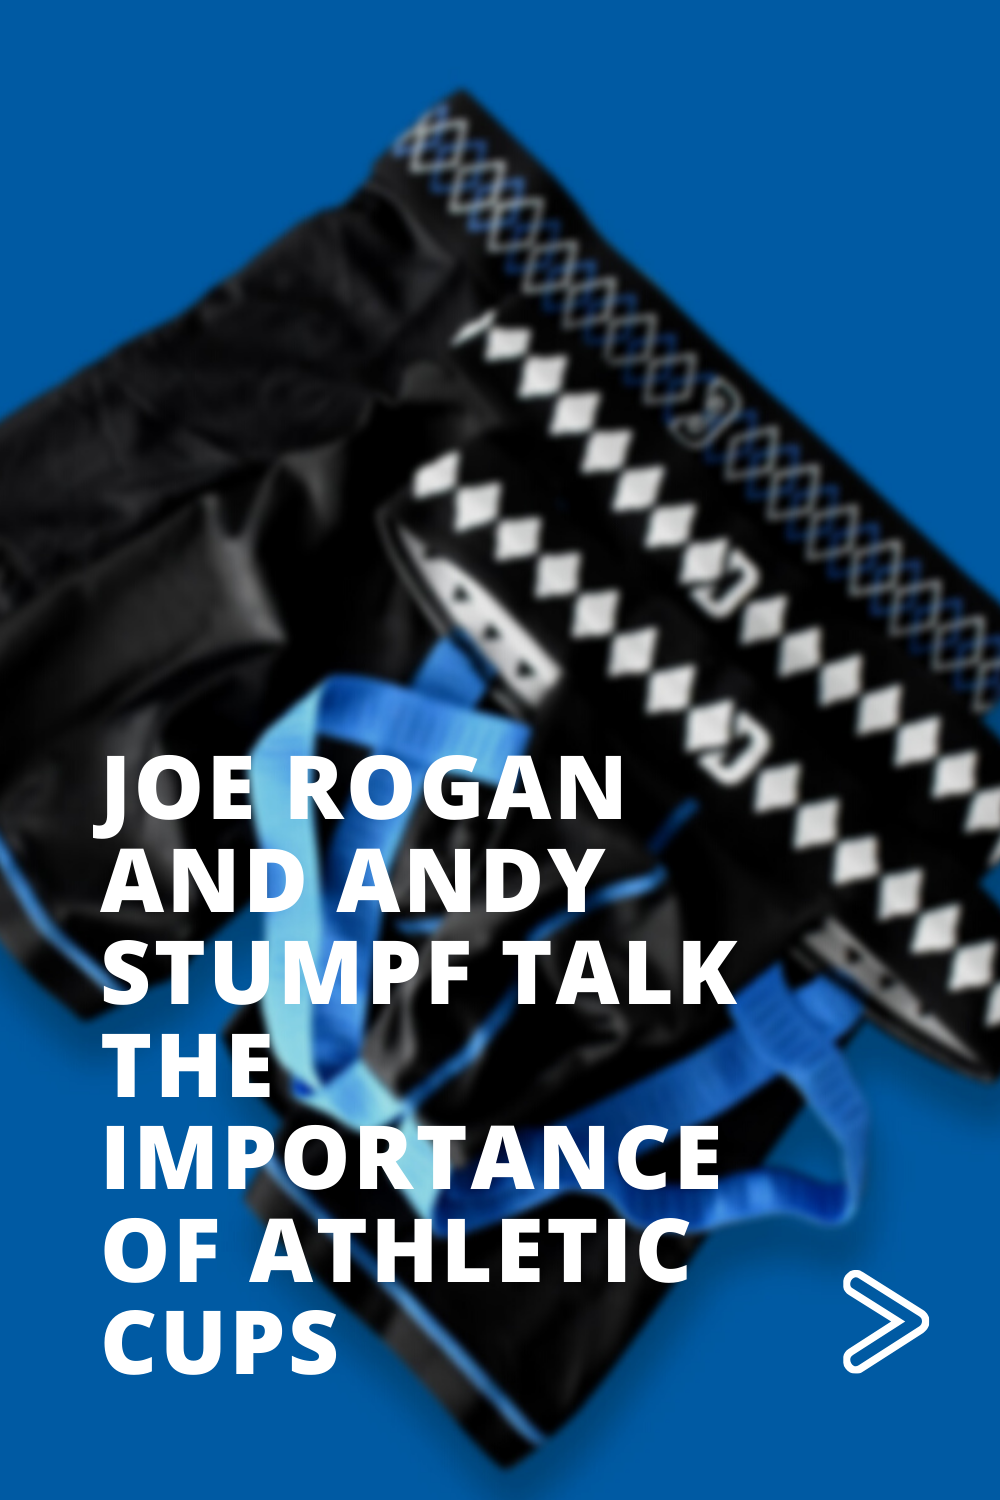 Joe Rogan and Andy Stumpf Talk The Importance of Athletic Cups